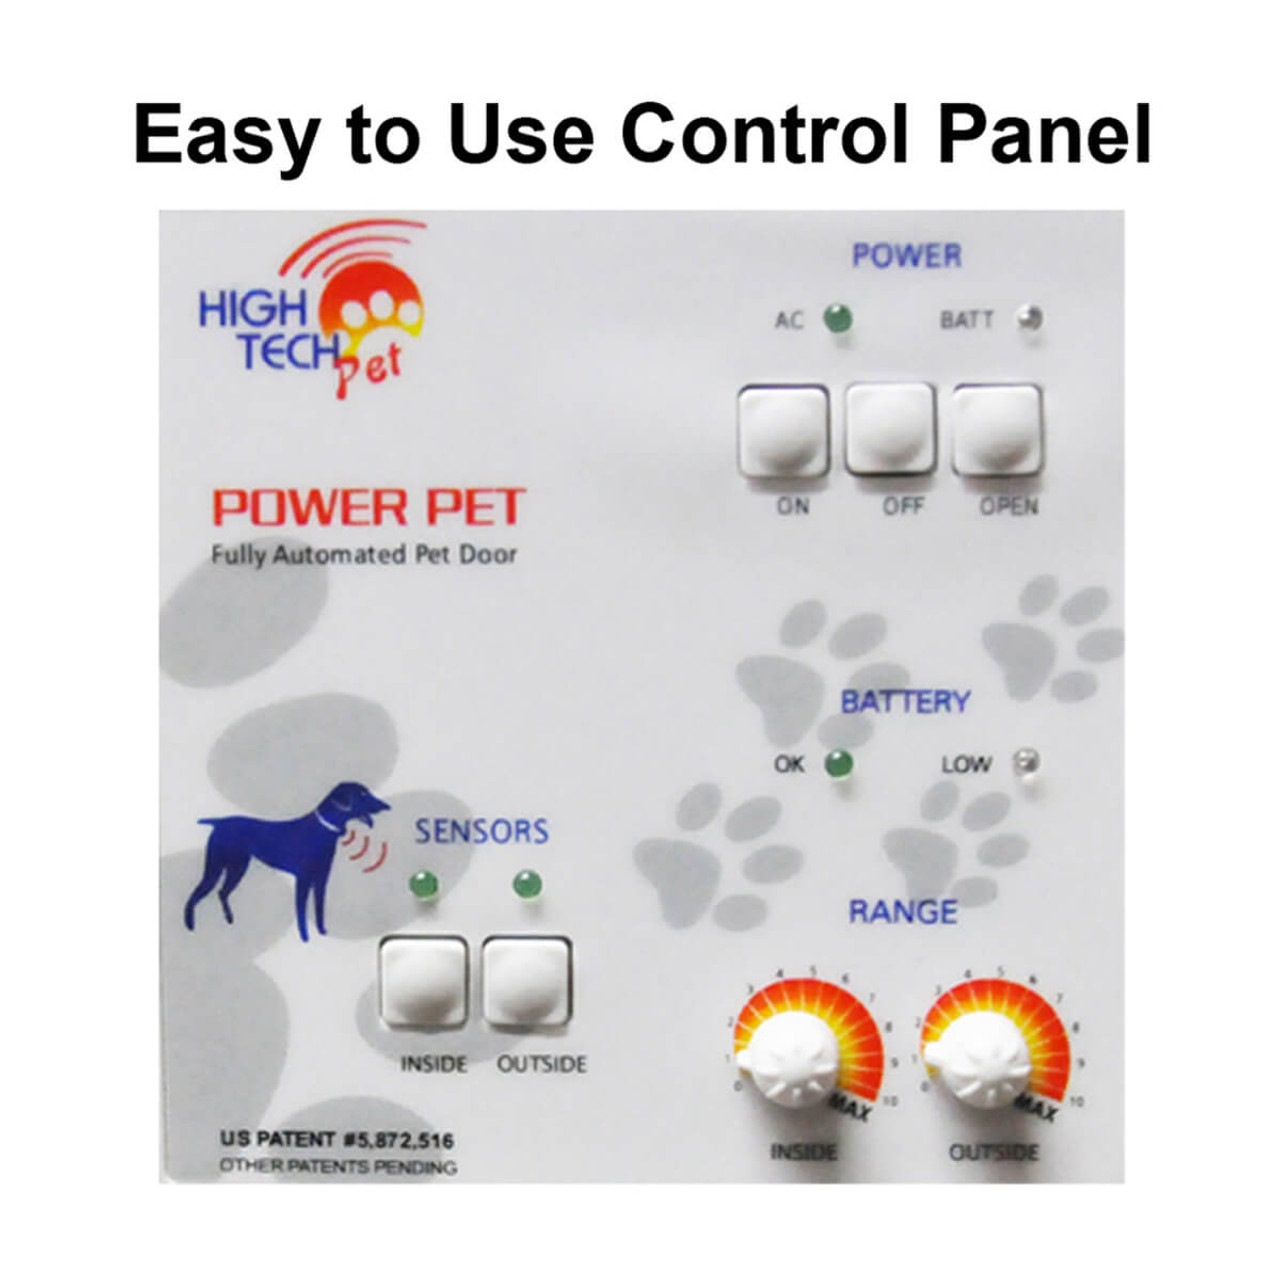 High Tech Electronic Motorized Doggy Doors have settings so you can only let your pets in, or out, or it can be open or locked